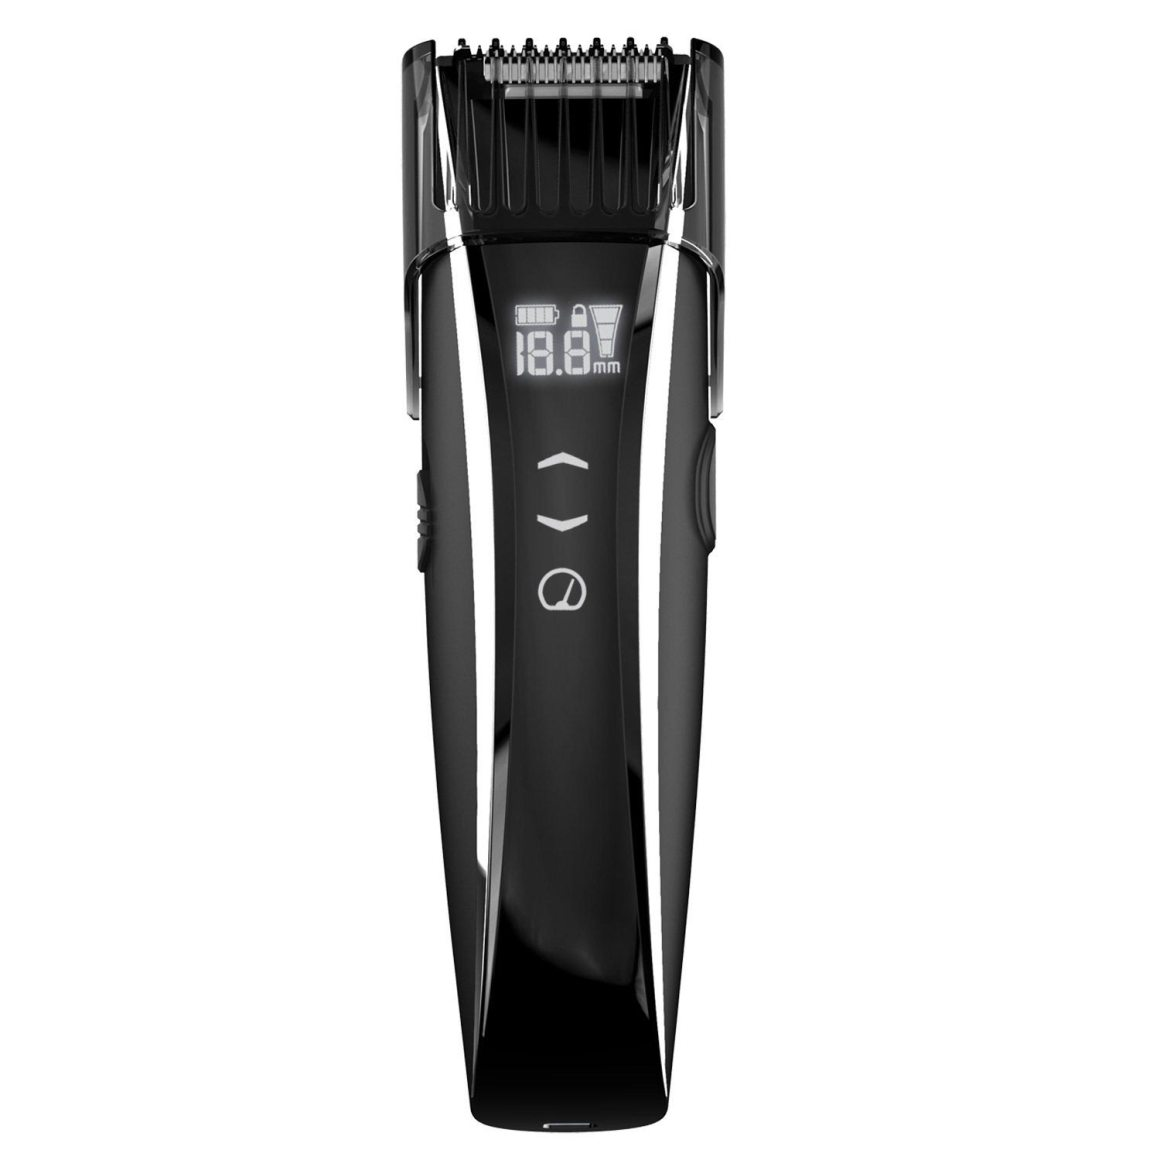 Remington MB4550T Rechargeable Men's Mustache and Beard Trimmer with Exclusive Touch Control